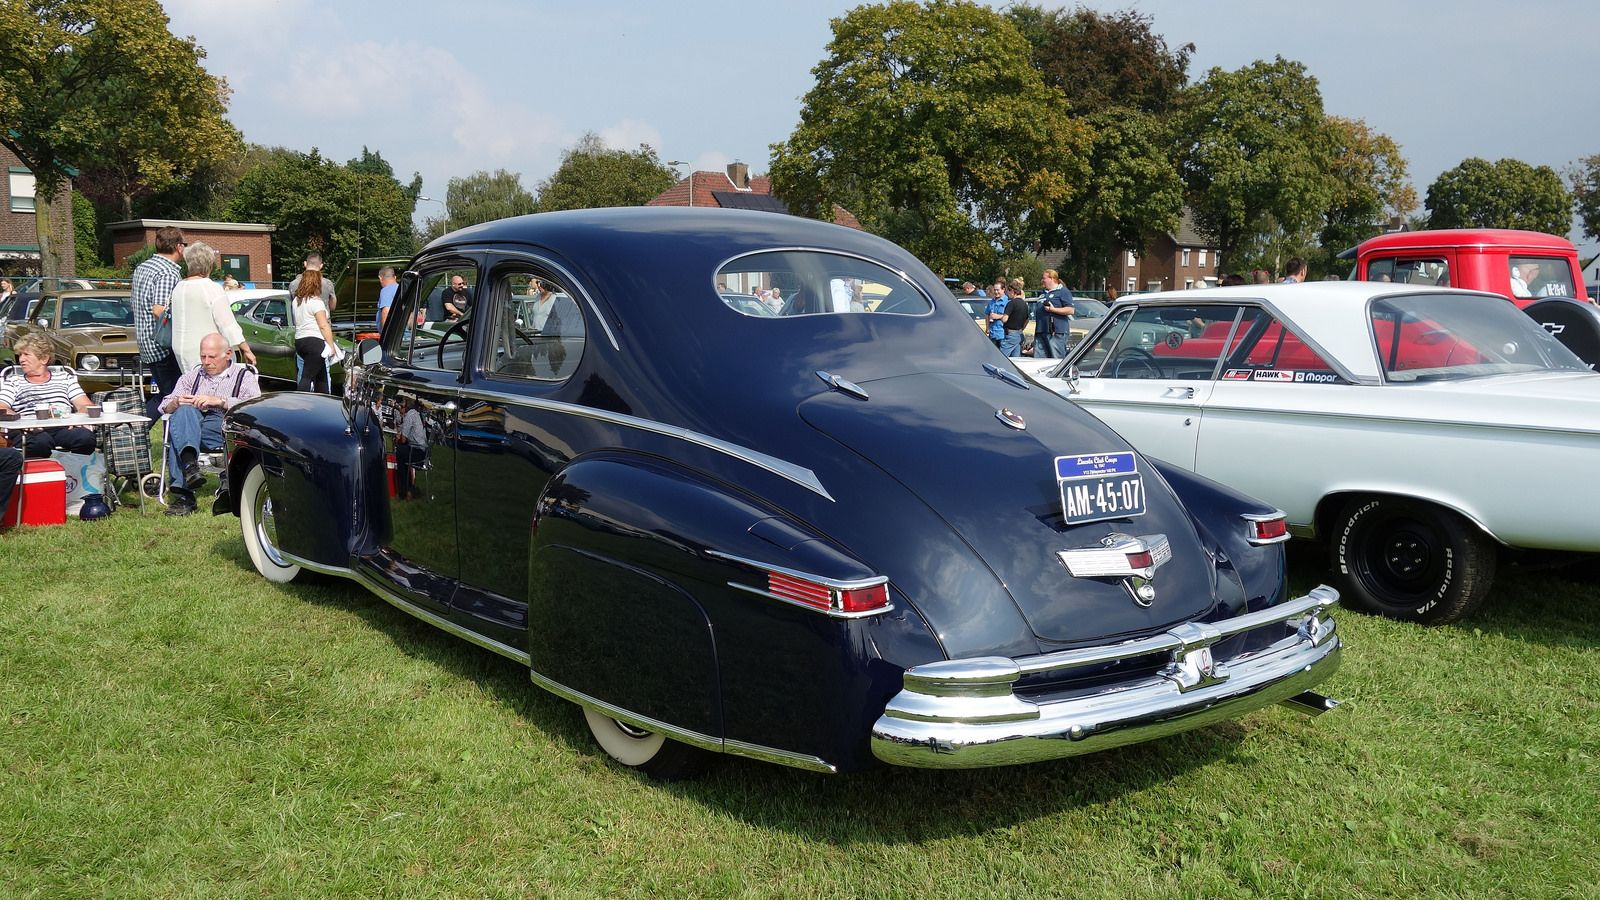 1947 Lincoln Club Coupe - Body Type 76H77 | Lincoln, by Ford ...